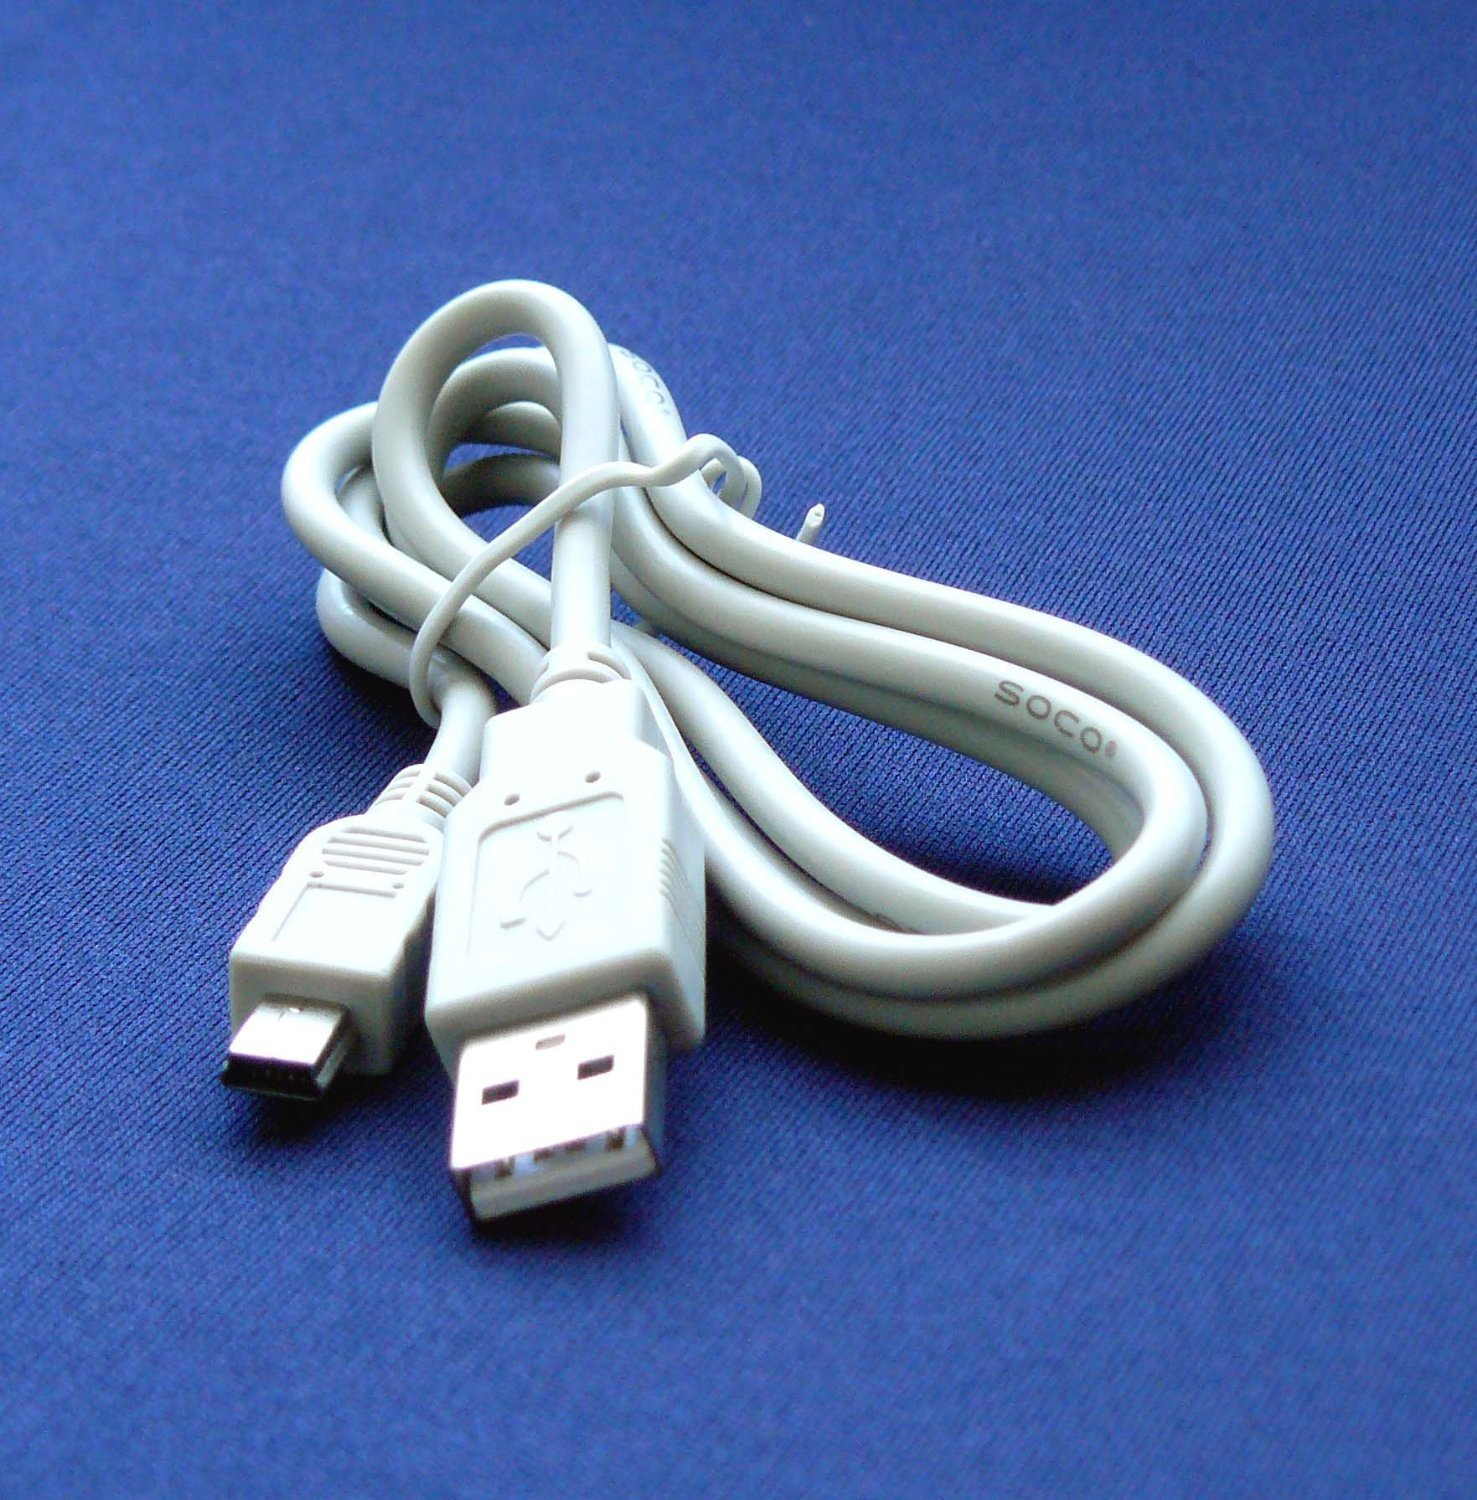 Canon PowerShot SX130 IS Digital Camera Compatible USB 2.0 Cable Cord - IFC-400PCU & IFC-300PCU Model - 2.5 feet White -, Compatible: Canon.., By Bargains Depot Ship from US